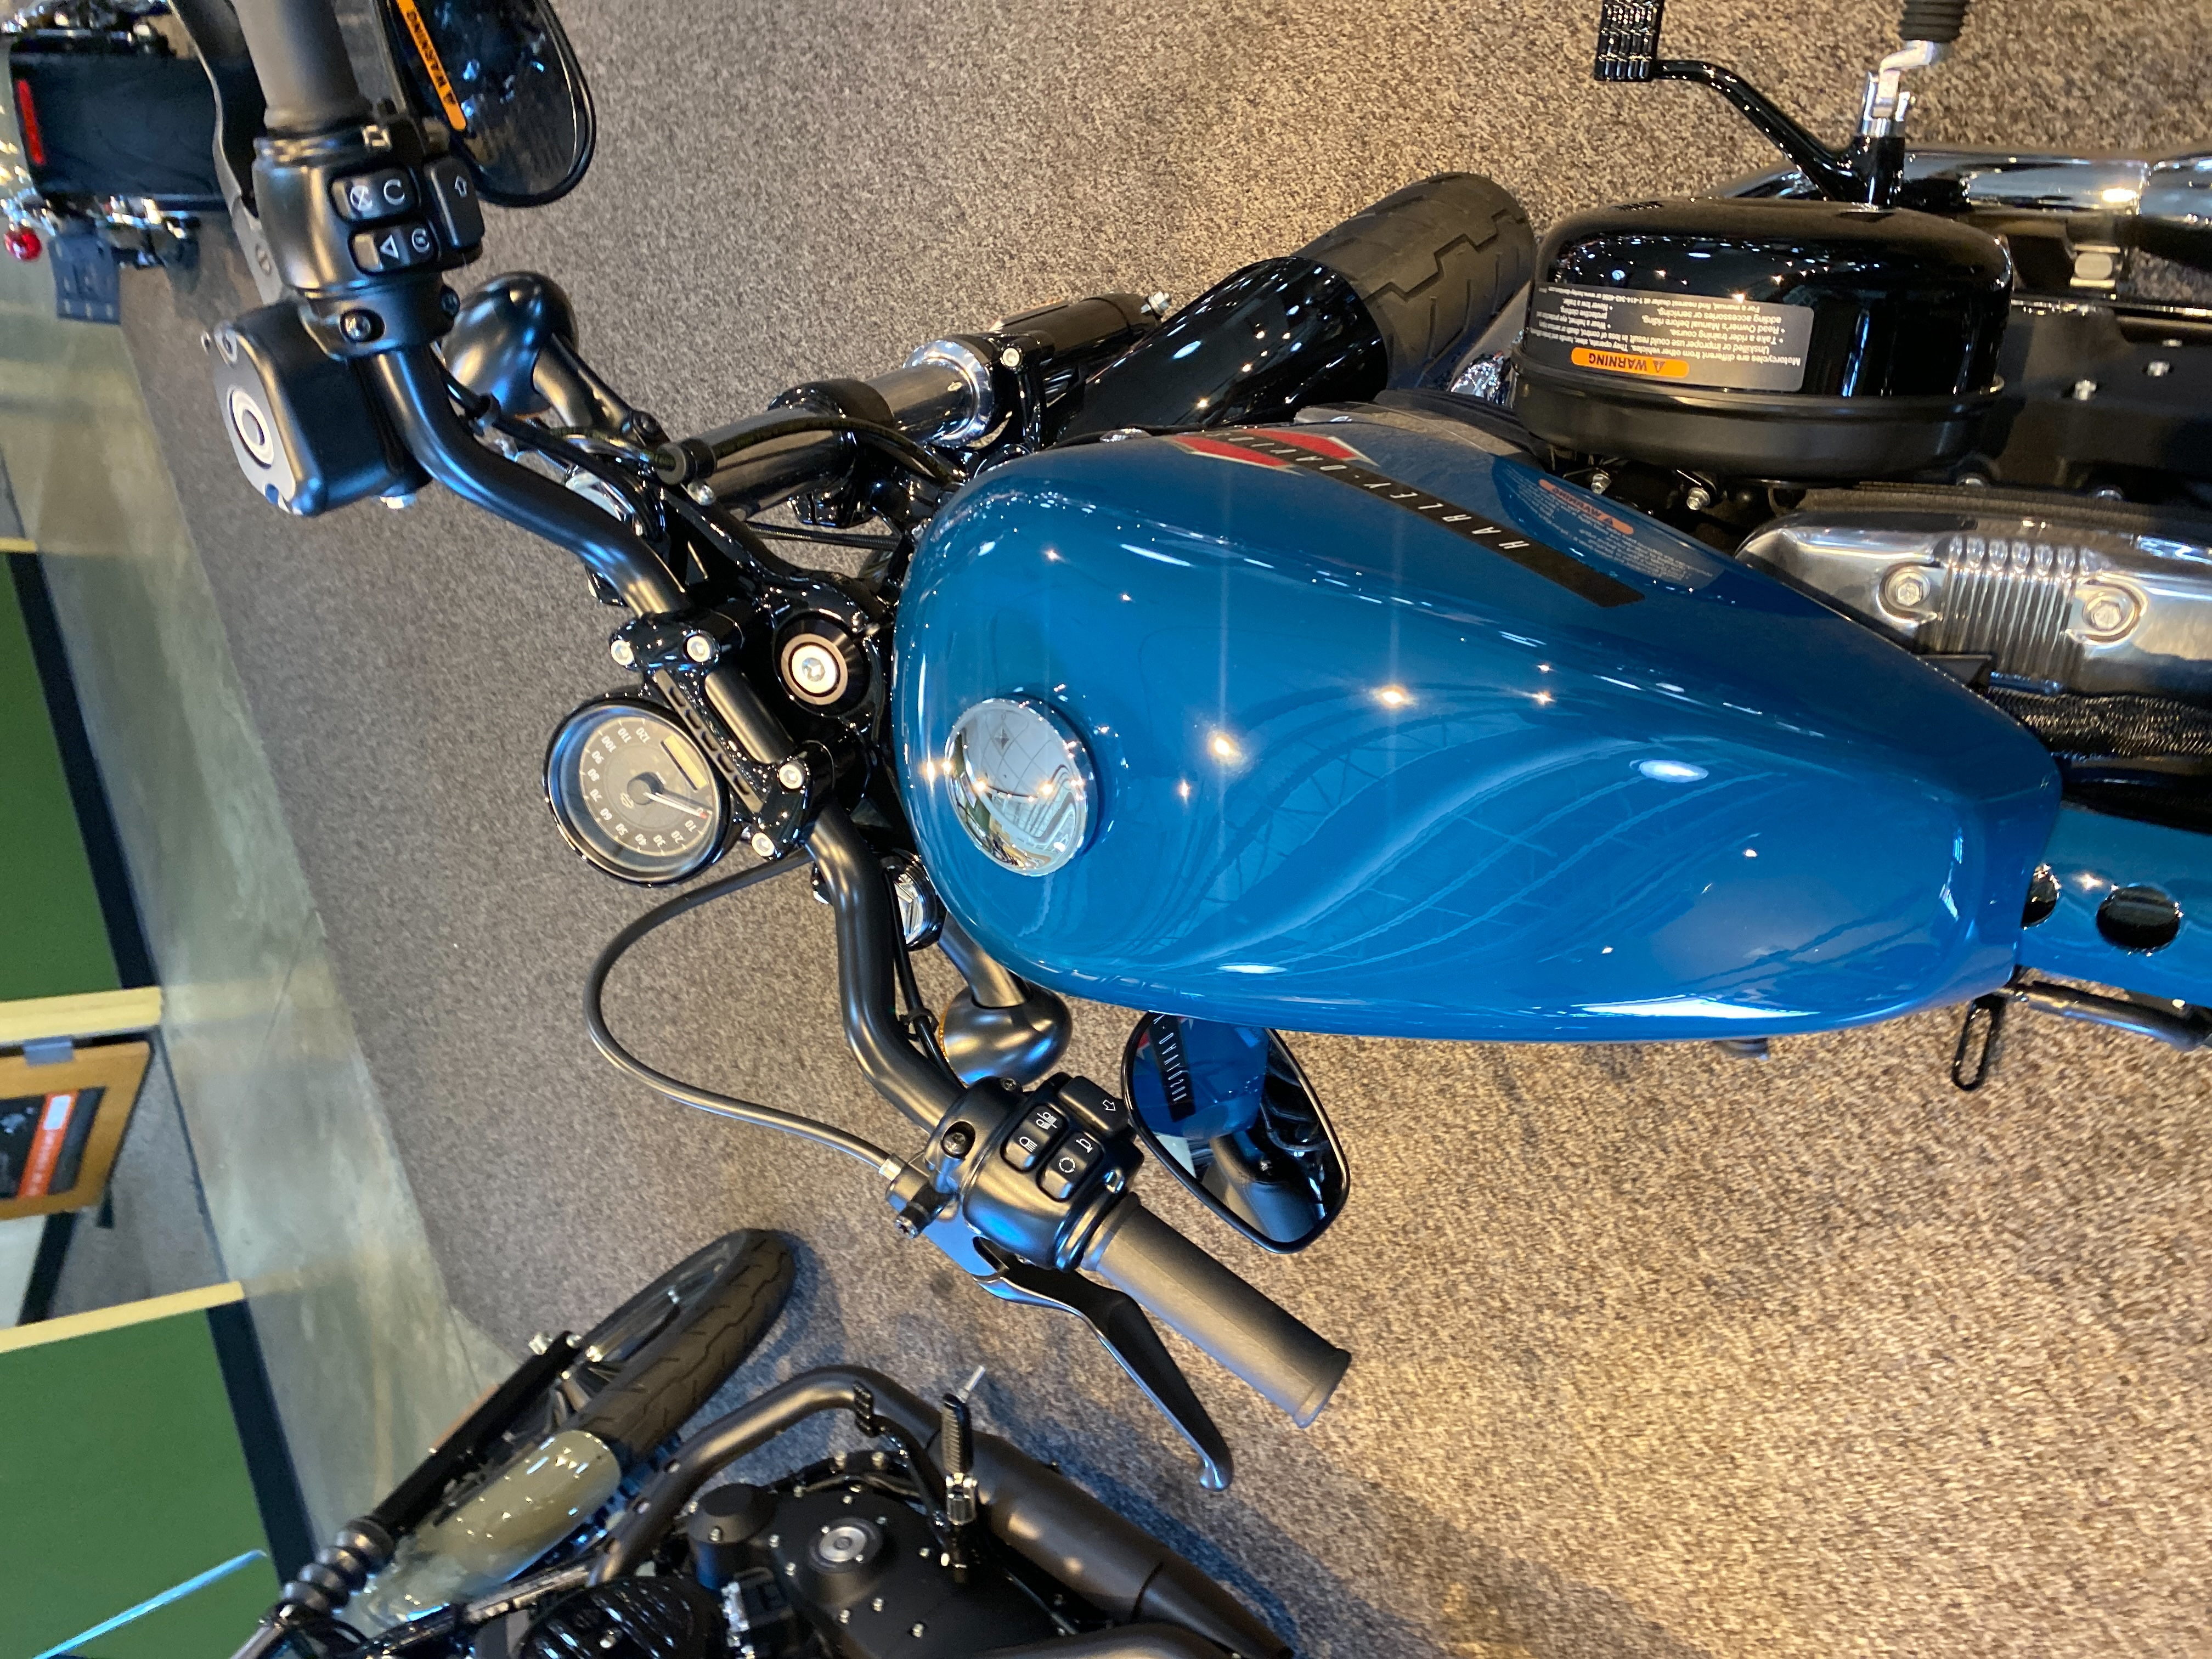 2021 Harley-Davidson Cruiser XL 1200X Forty-Eight at Outpost Harley-Davidson